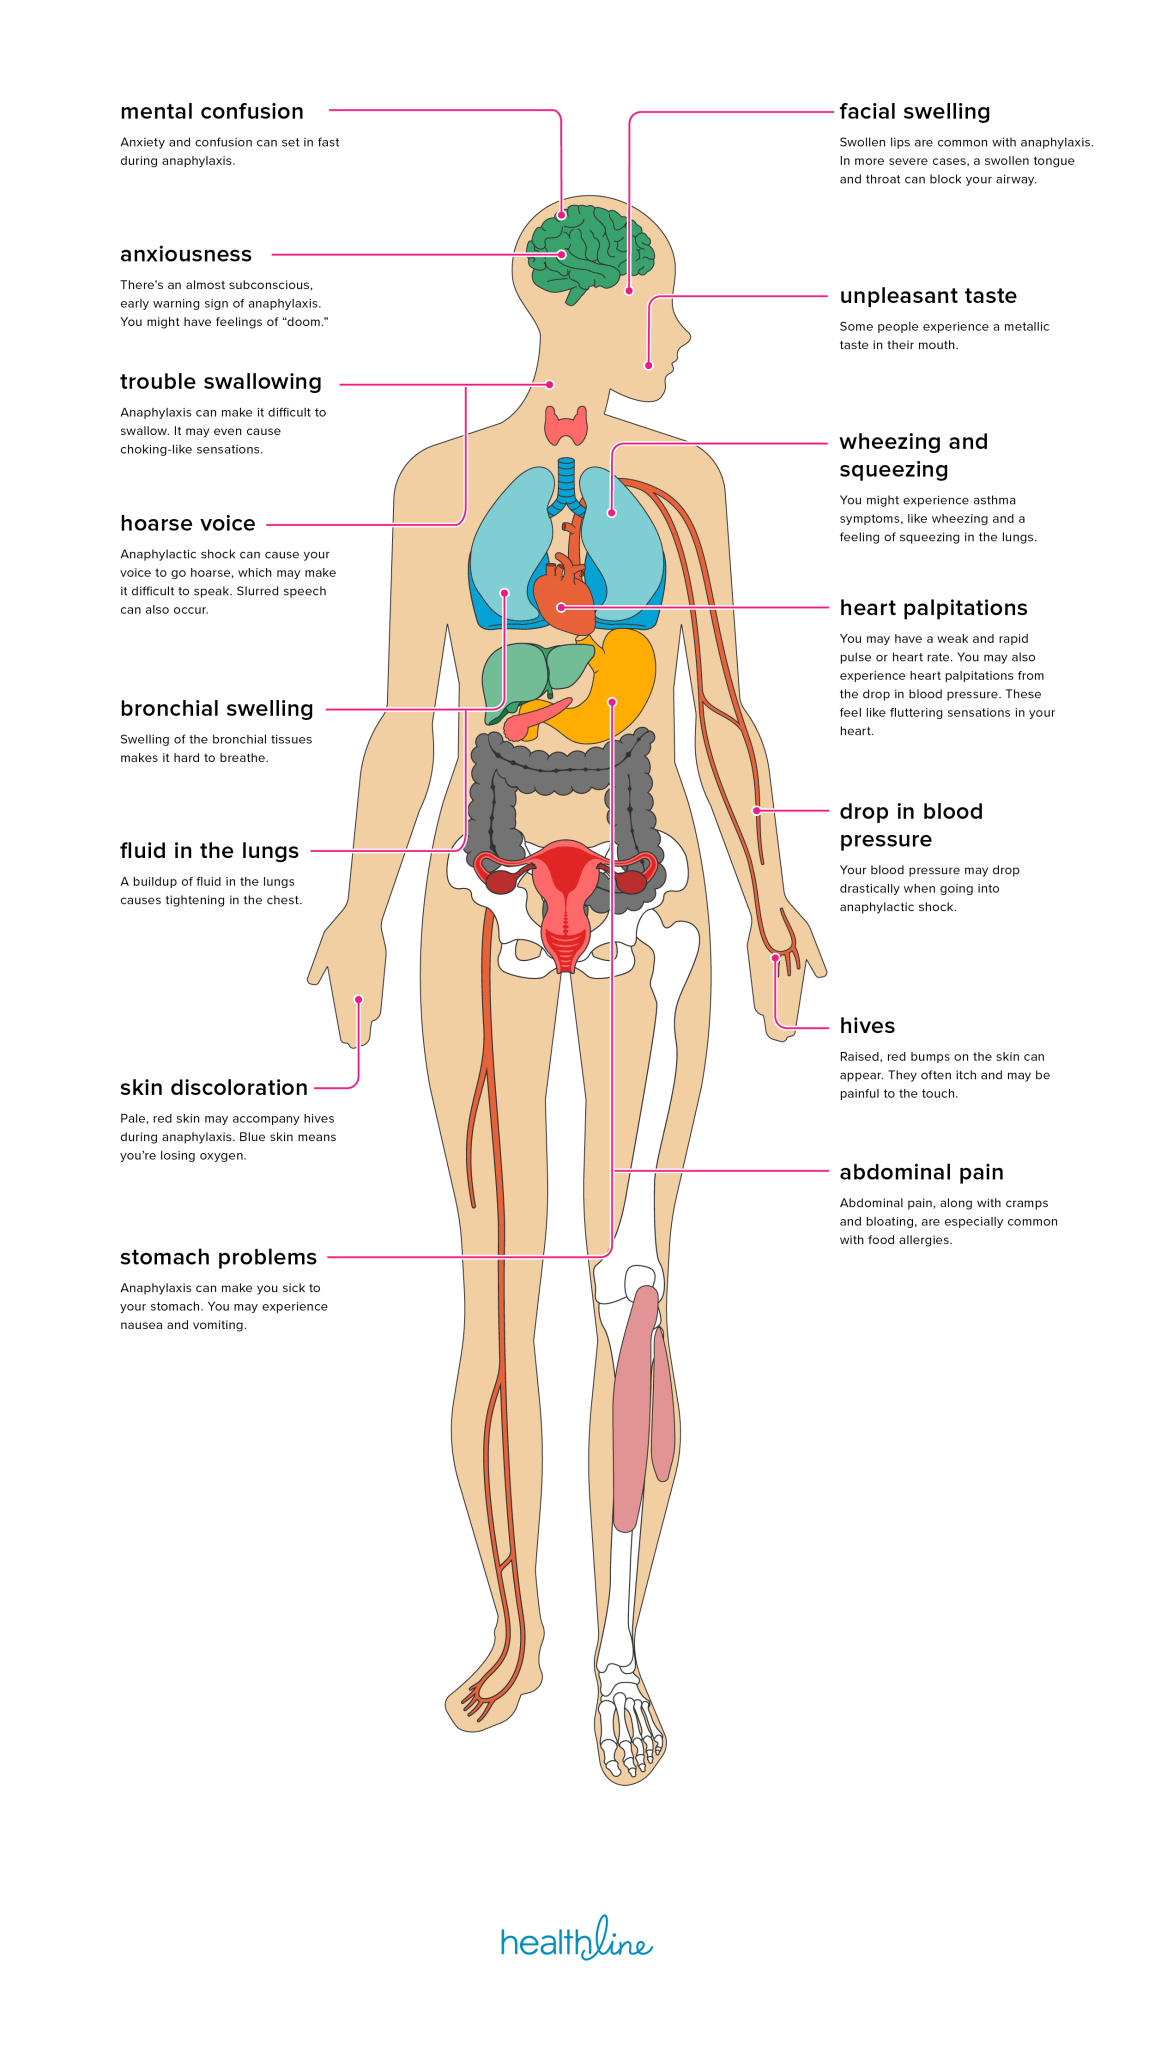 15 Effects of Anaphylaxis on the Body